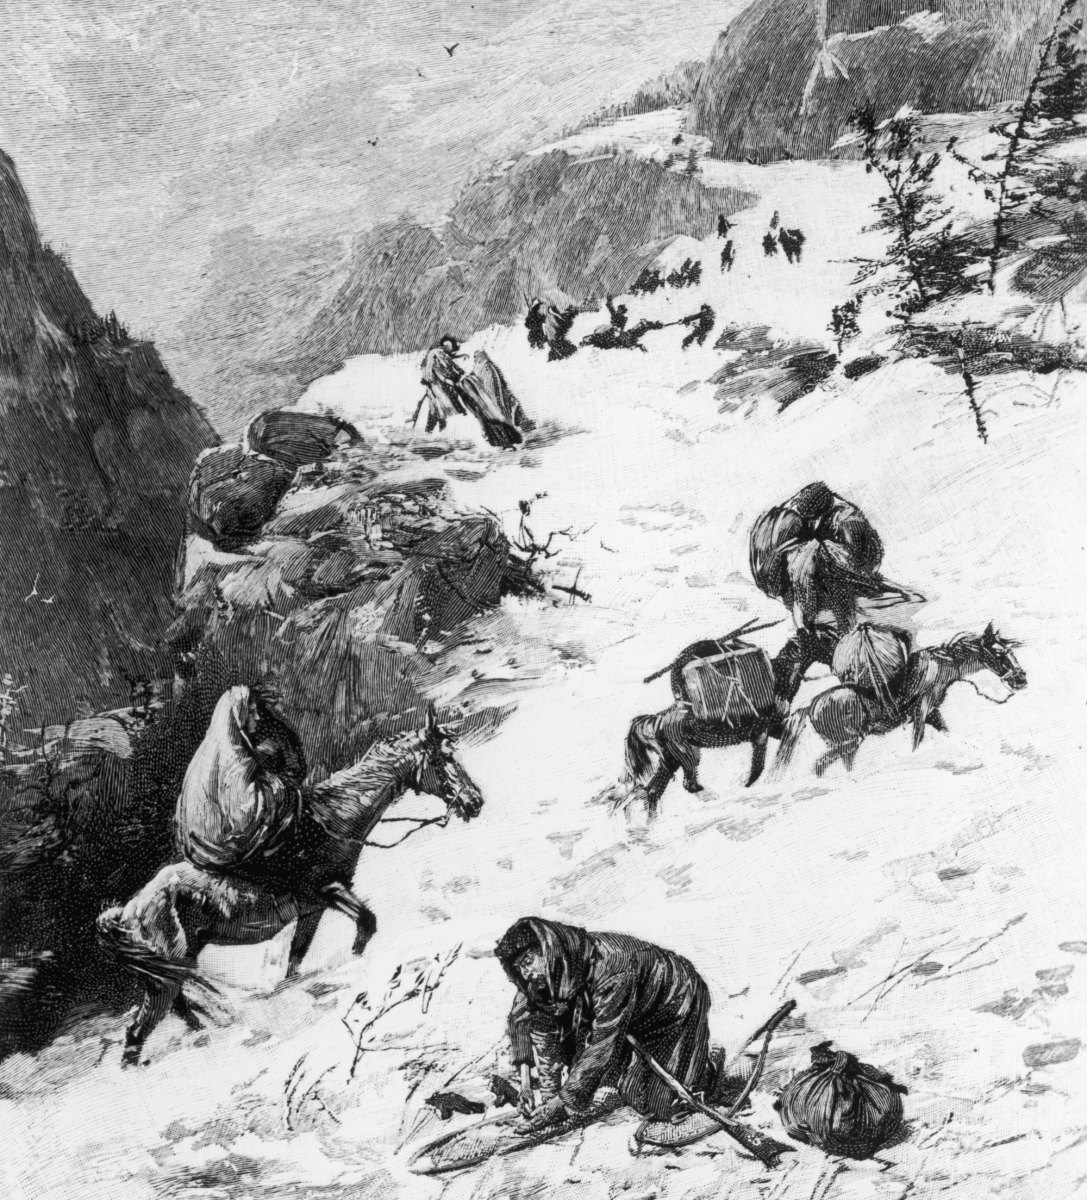 A group of California-bound American emigrants known as the Donner Party, who after becoming snowbound in the Sierra Nevada in the winter of 1847, resorted to cannibalism.